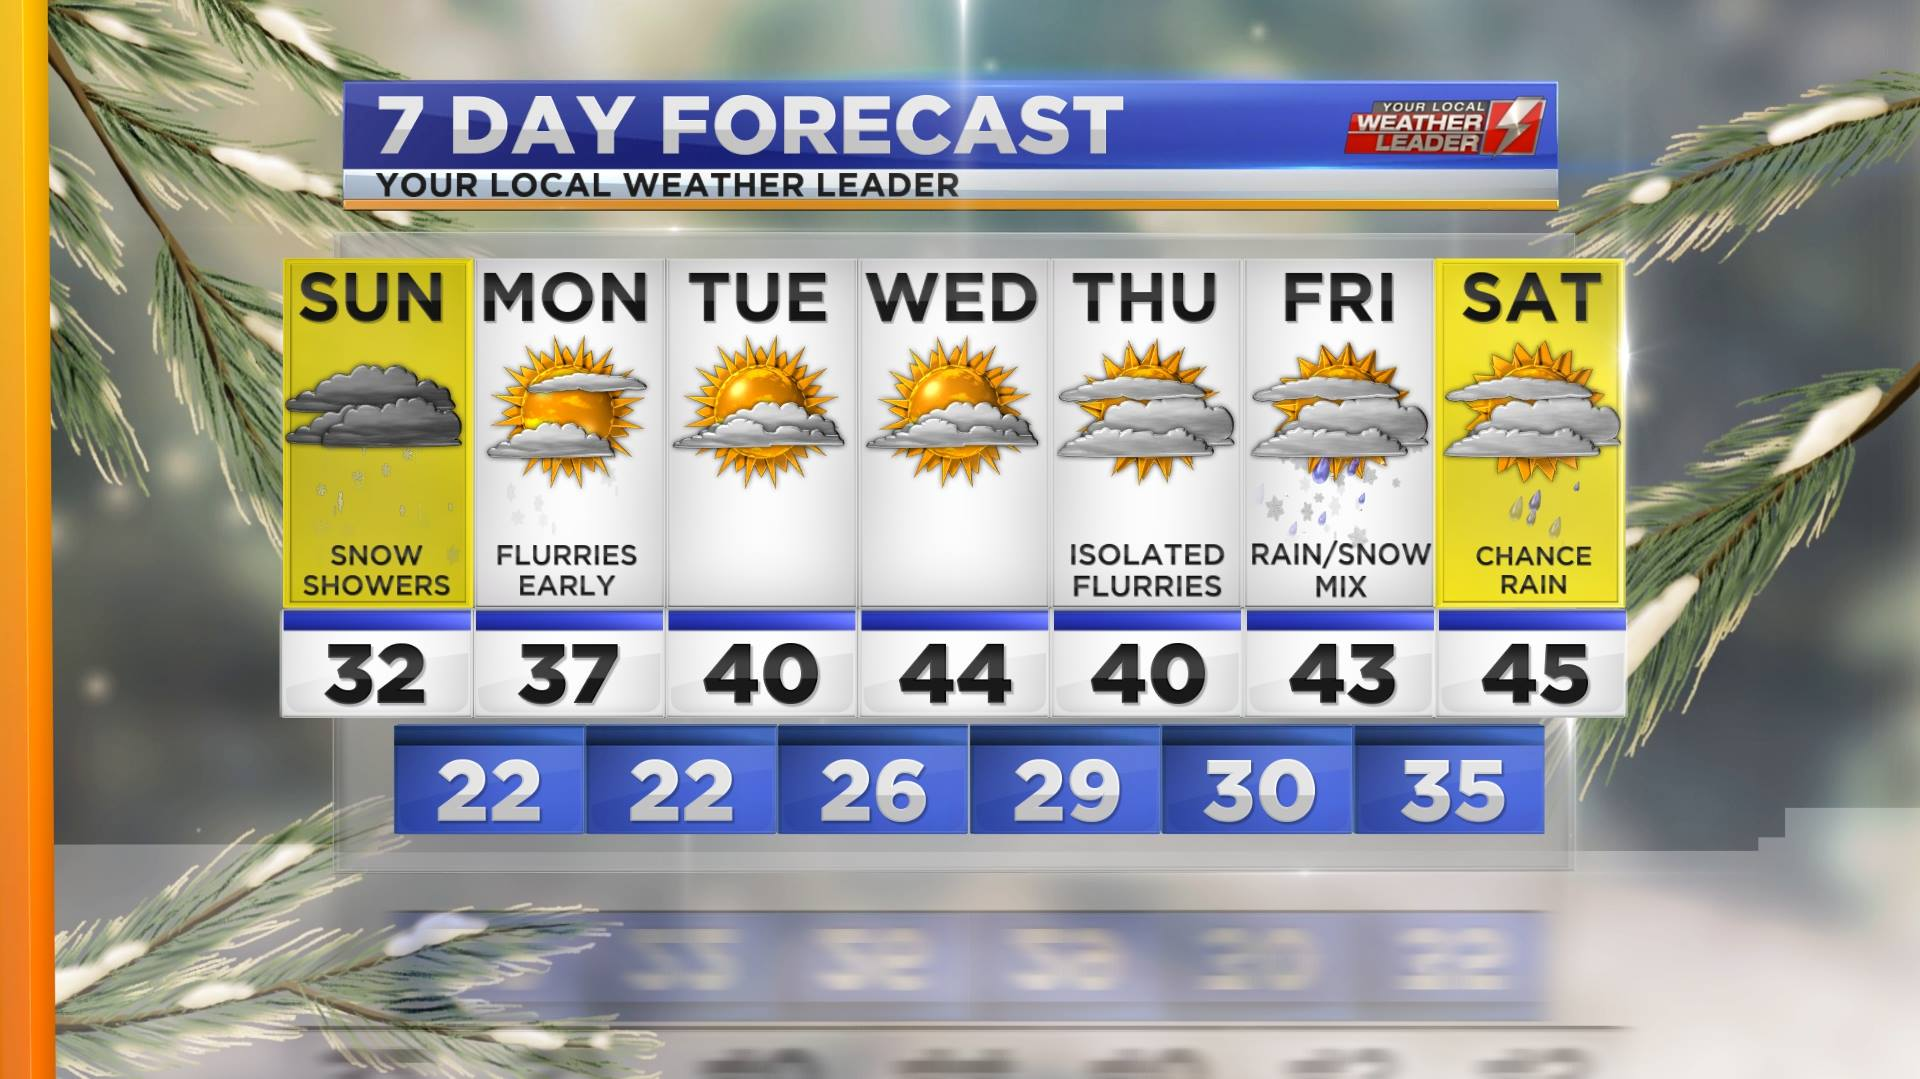 Your 7-day Forecast for Sunday 13 January 2019